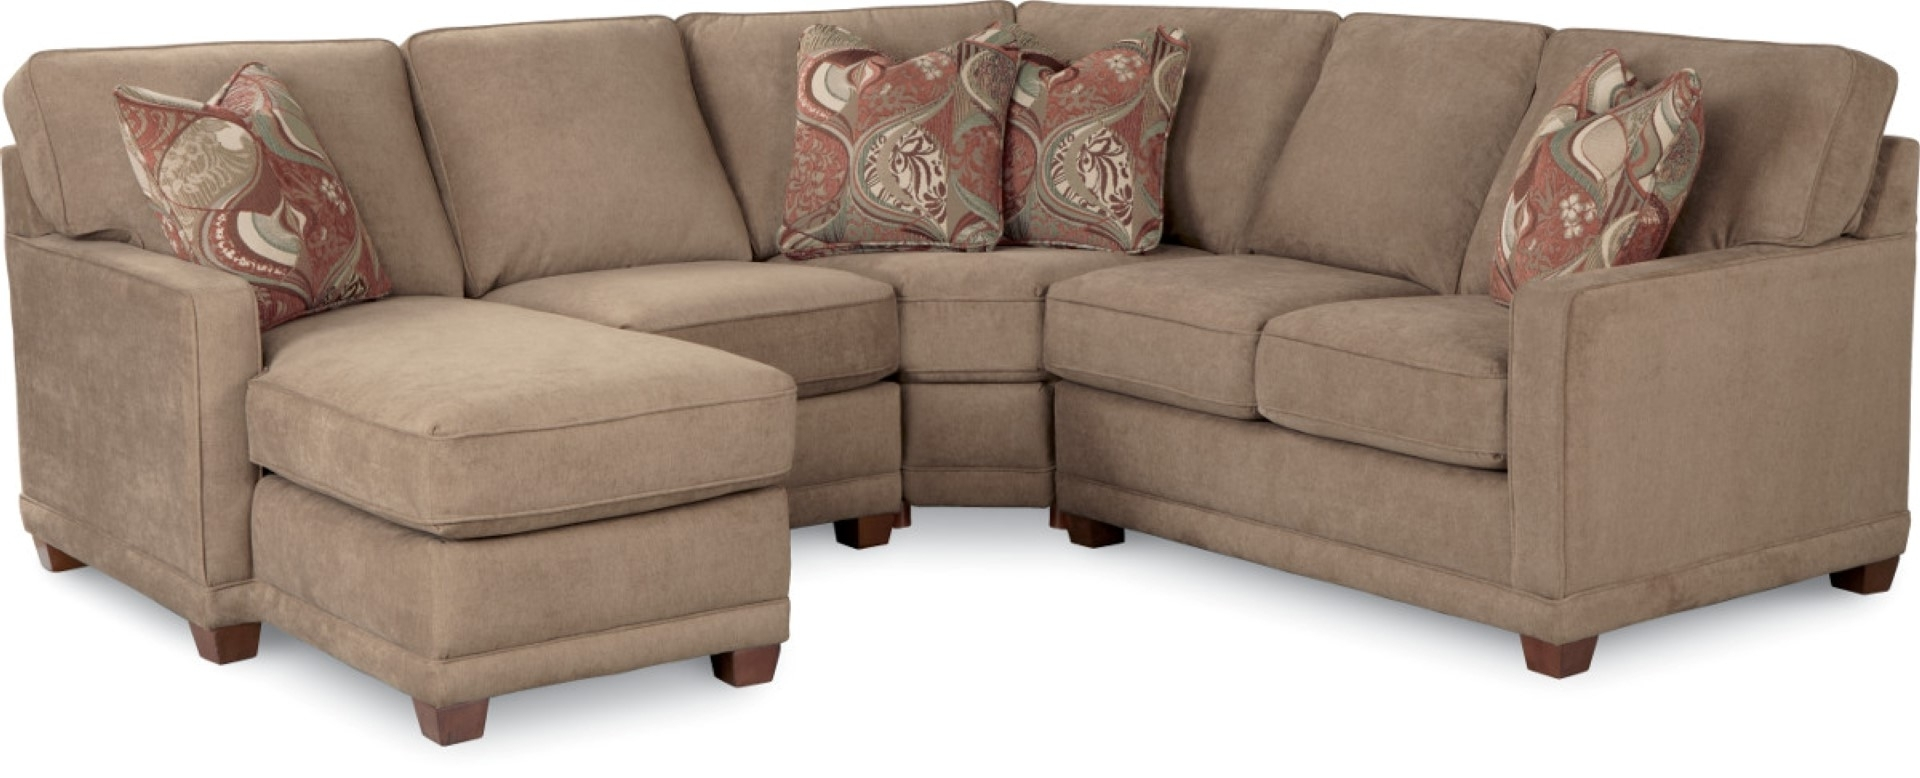 Most Recent Kennedy Sectional Sofa – Town & Country Furniture Within Sectional Sofas At Lazy Boy (View 9 of 20)